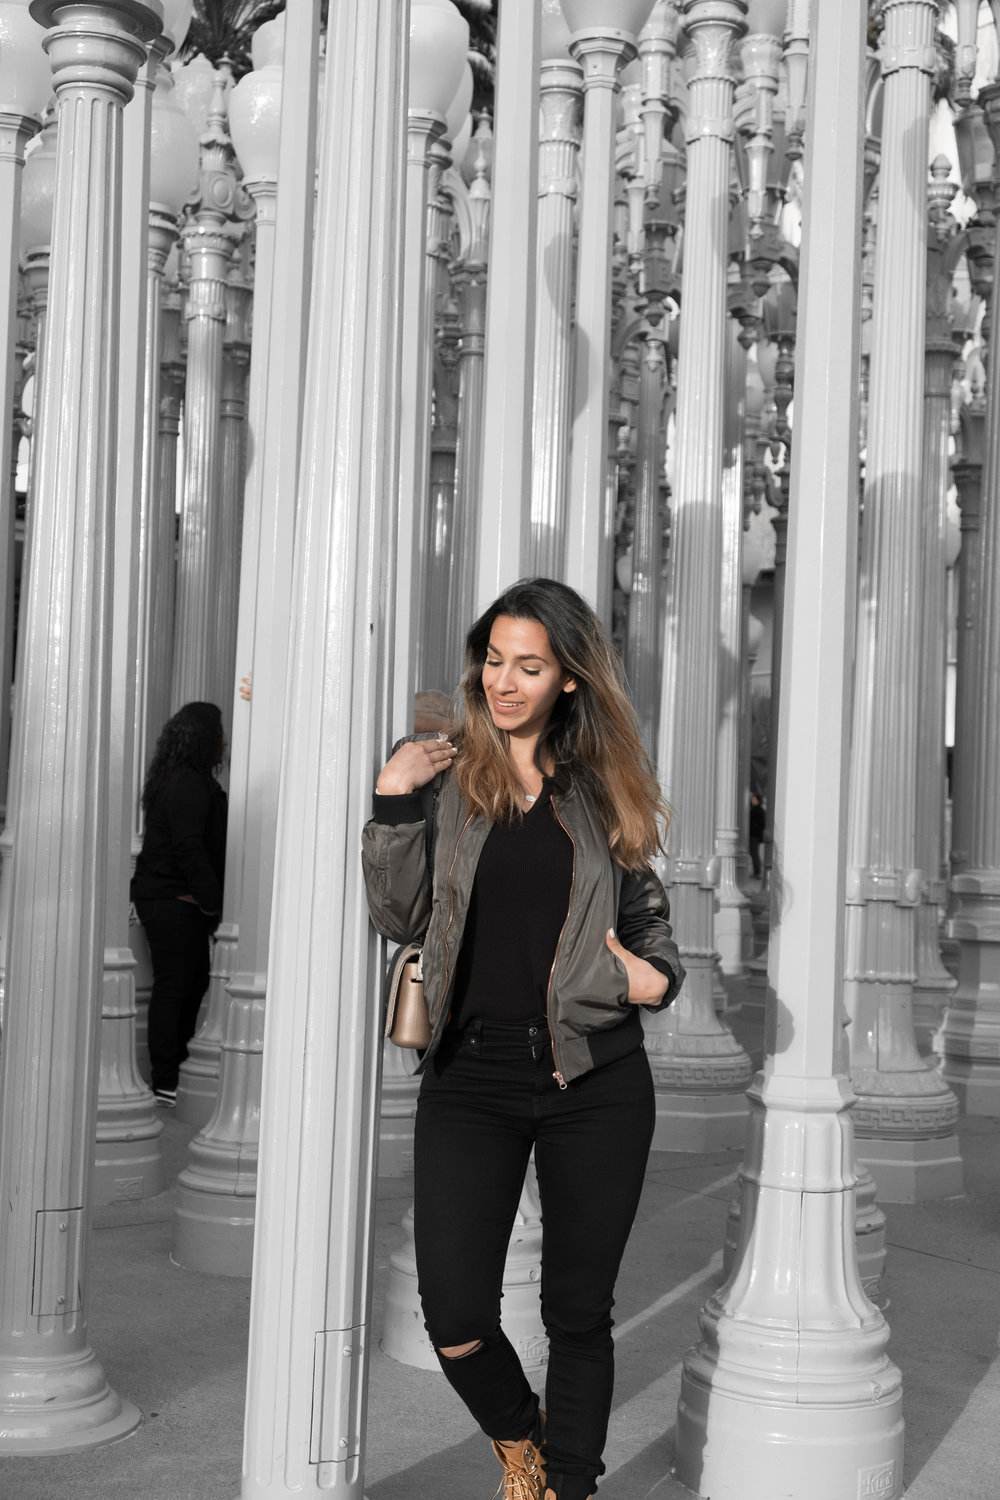 I'm wearing : bomber jacket - Random | black T - Brandy Melville | jeans - 7for all mankind | shoes - Timberland.